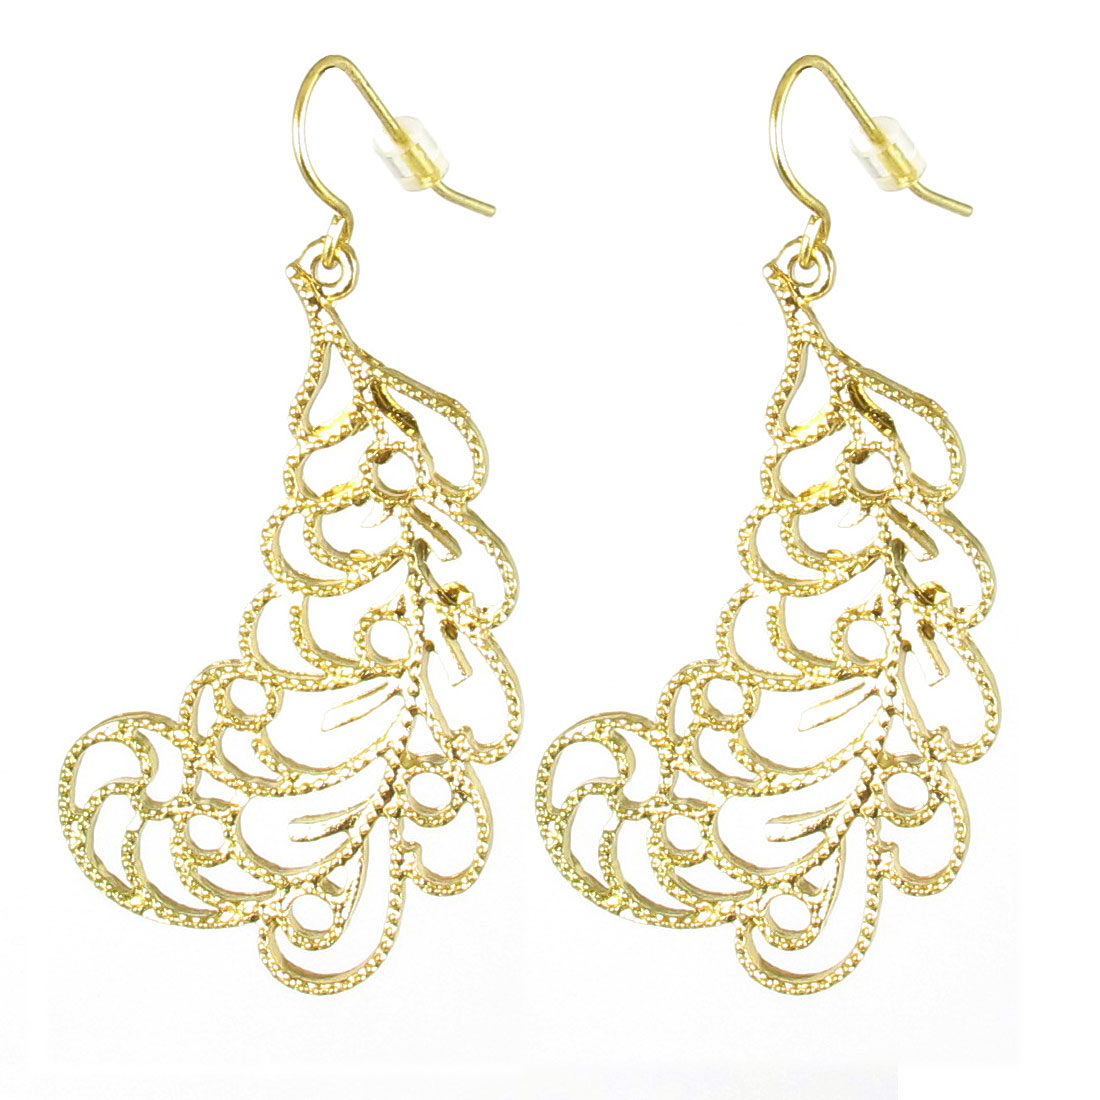 "Women Metal Stylish Glittery Dangling Pendant Hook Earrings Earbobs Gold Tone 2"" Length Pair"